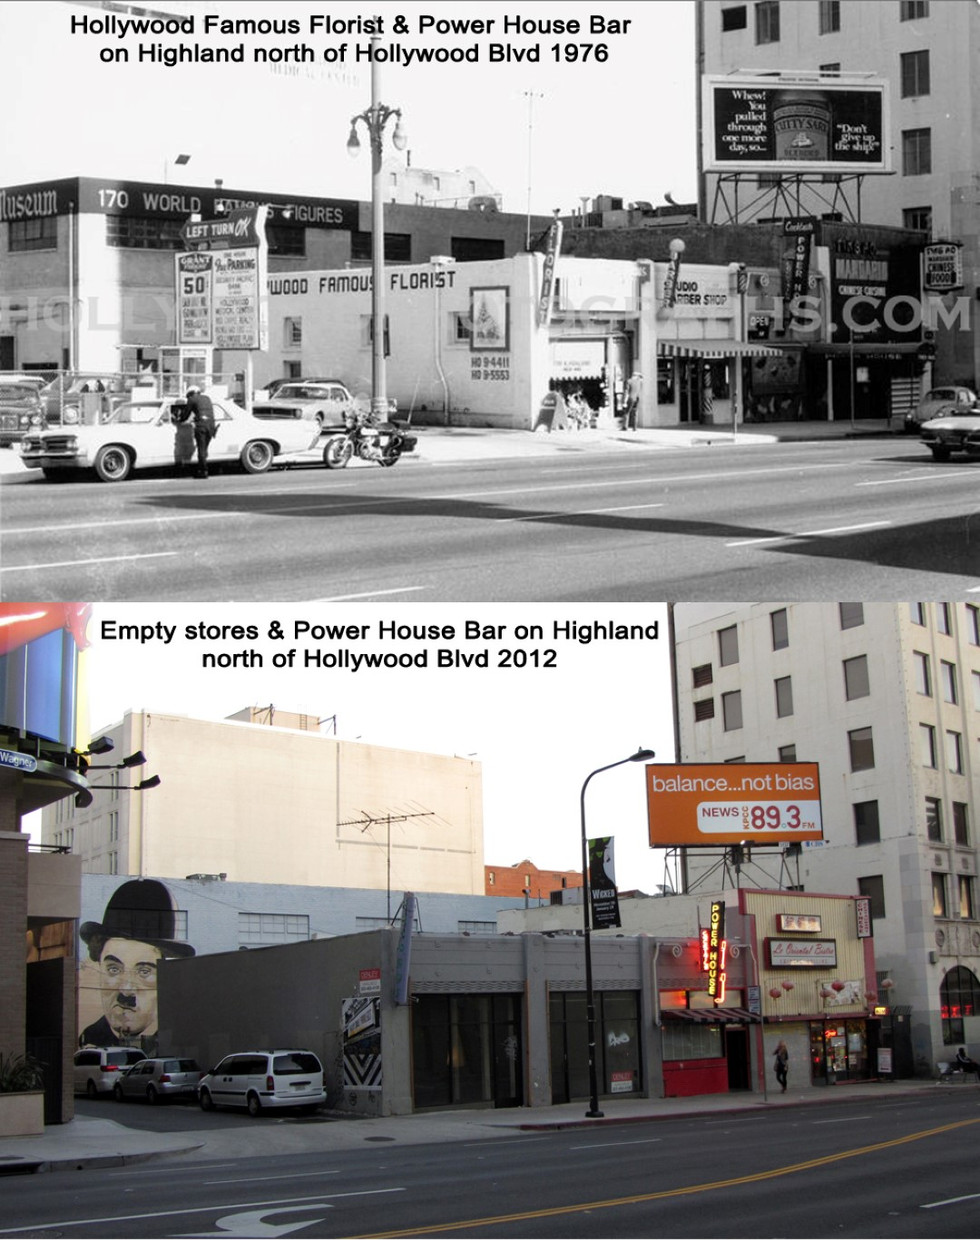 Power House Bar on Highland 1976 & 2012